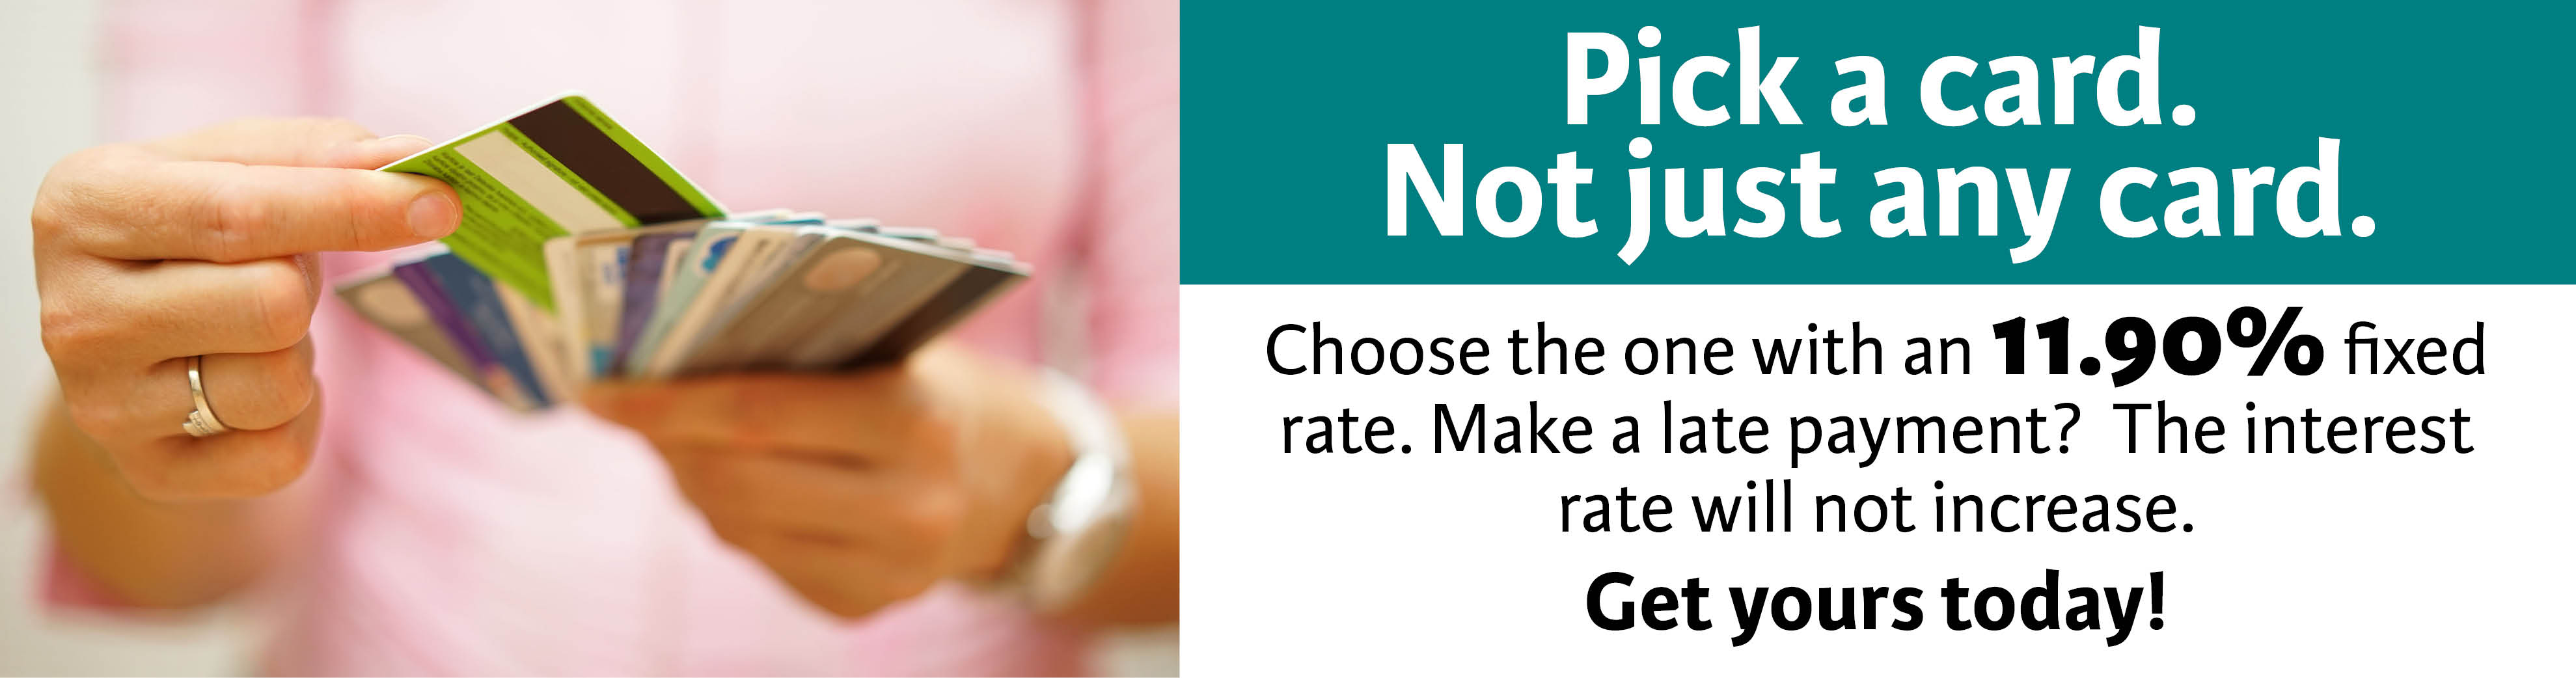 Get your 11.90% fixed rate card today with no interest rate increase after late payment.